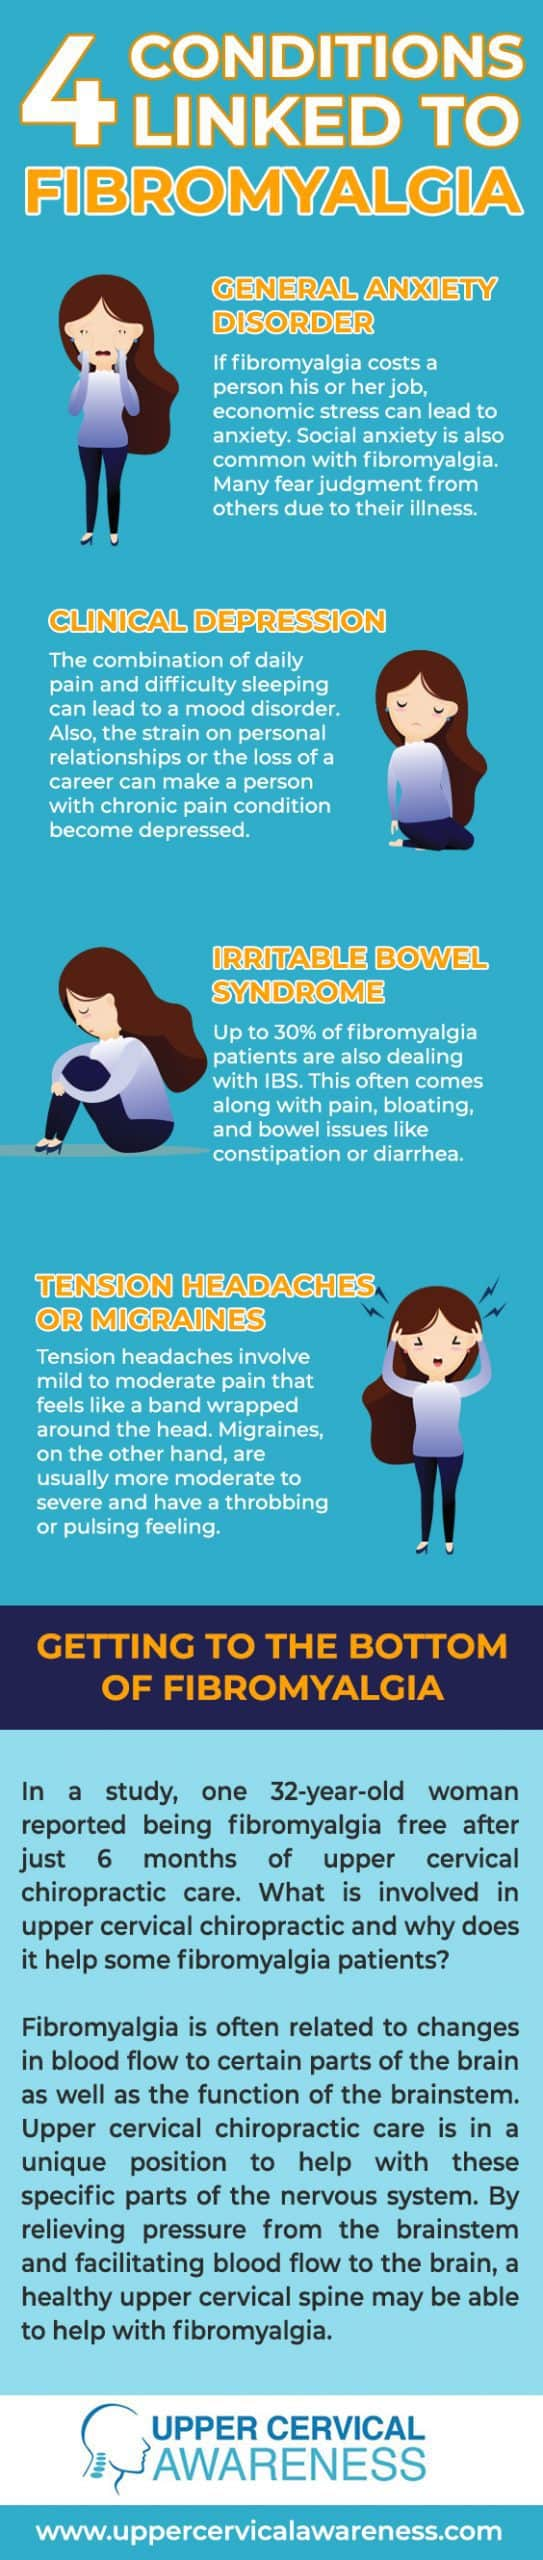 4-devastating-associated-conditions-linked-to-fibromyalgia